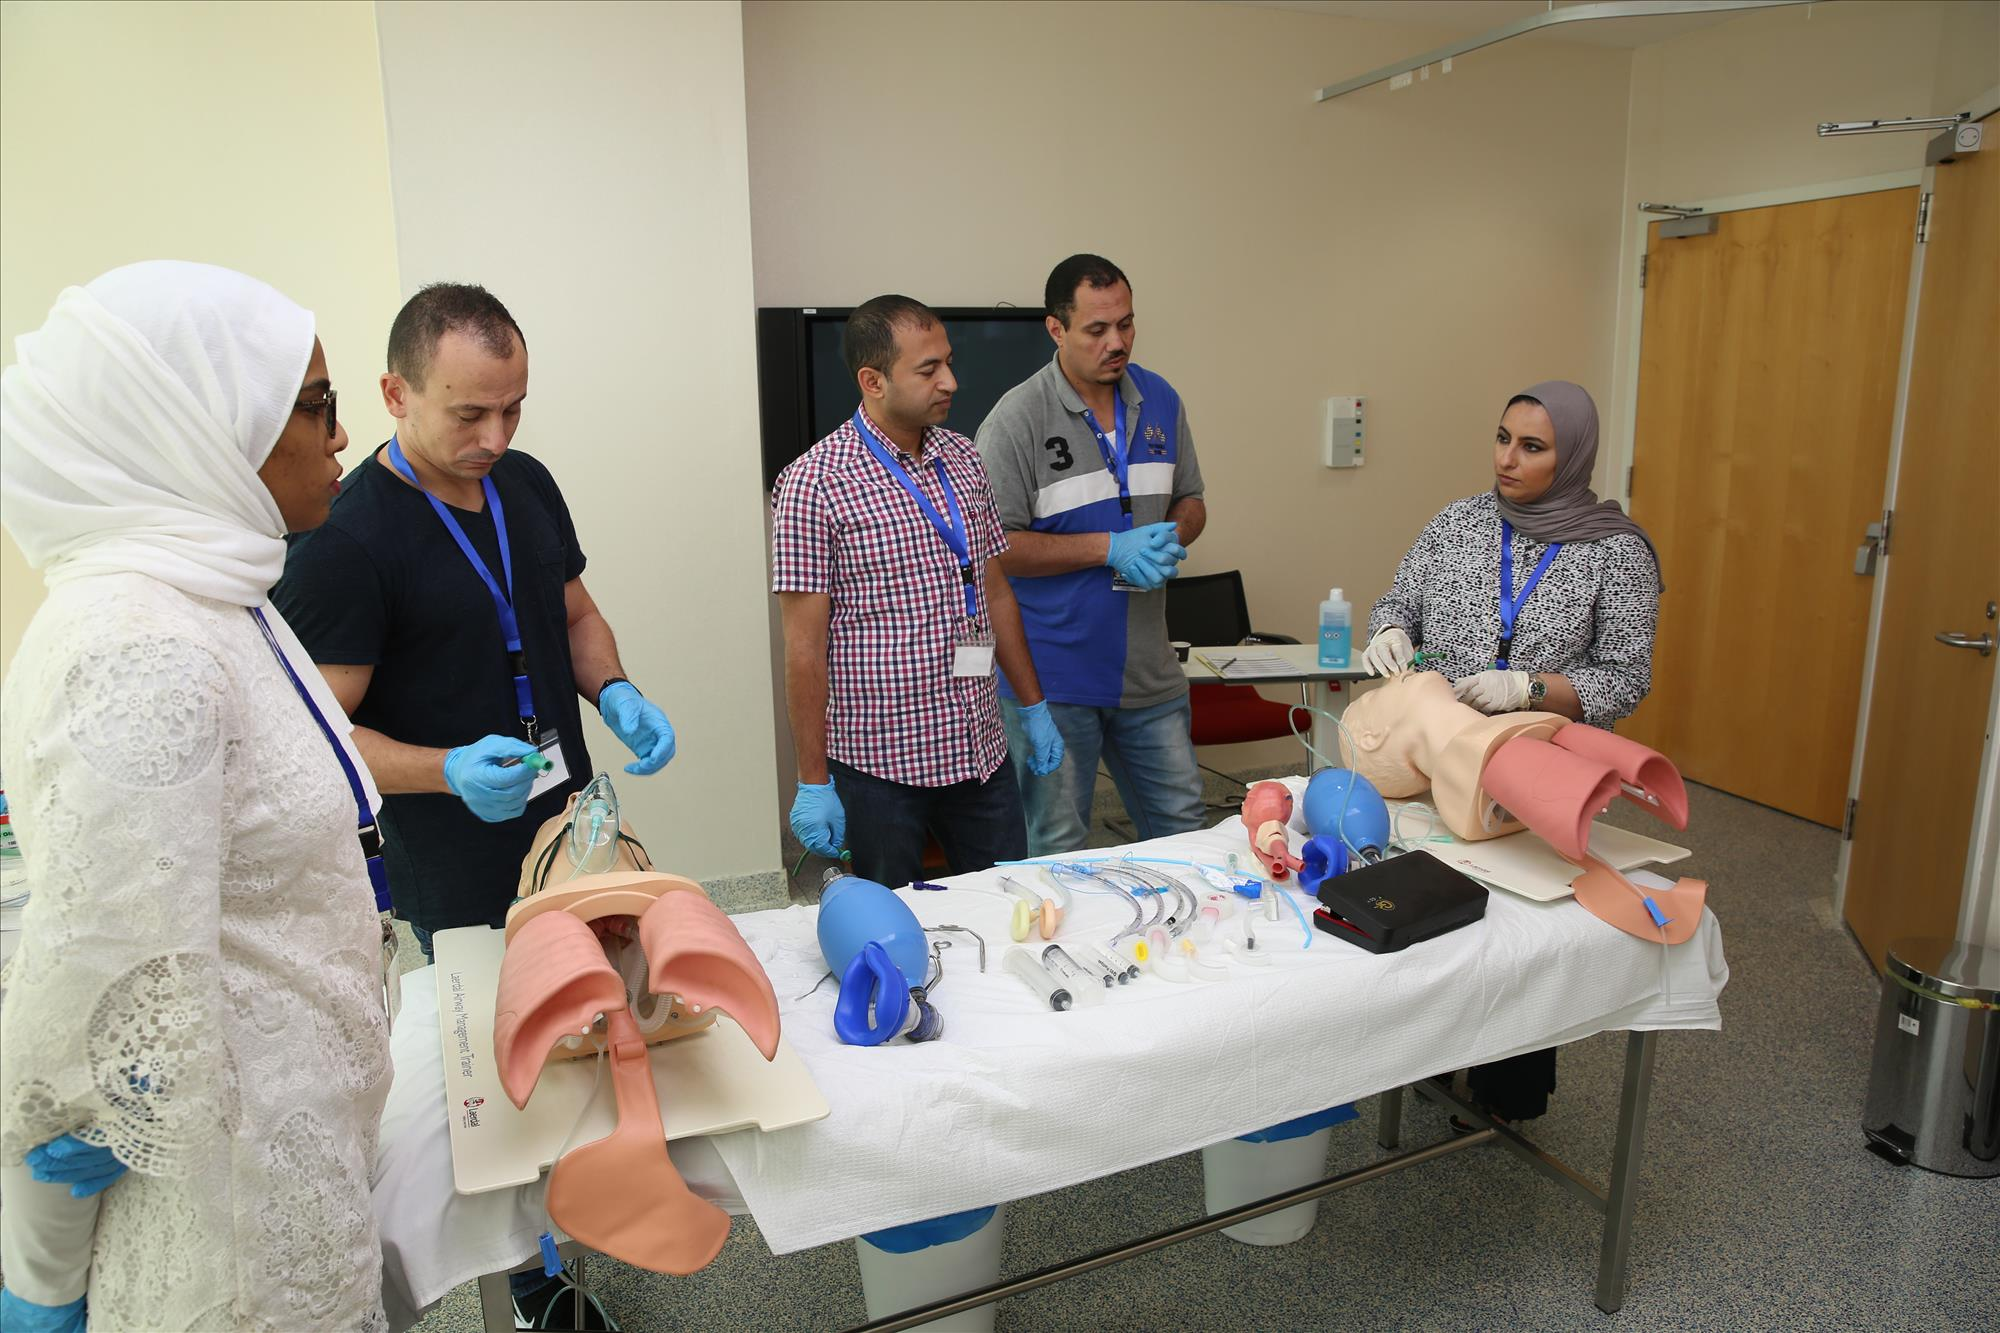 ADVANCED TRAUMA LIFE SUPPORT (ATLS) PROVIDER COURSE 10th EDITION June 16-17-18